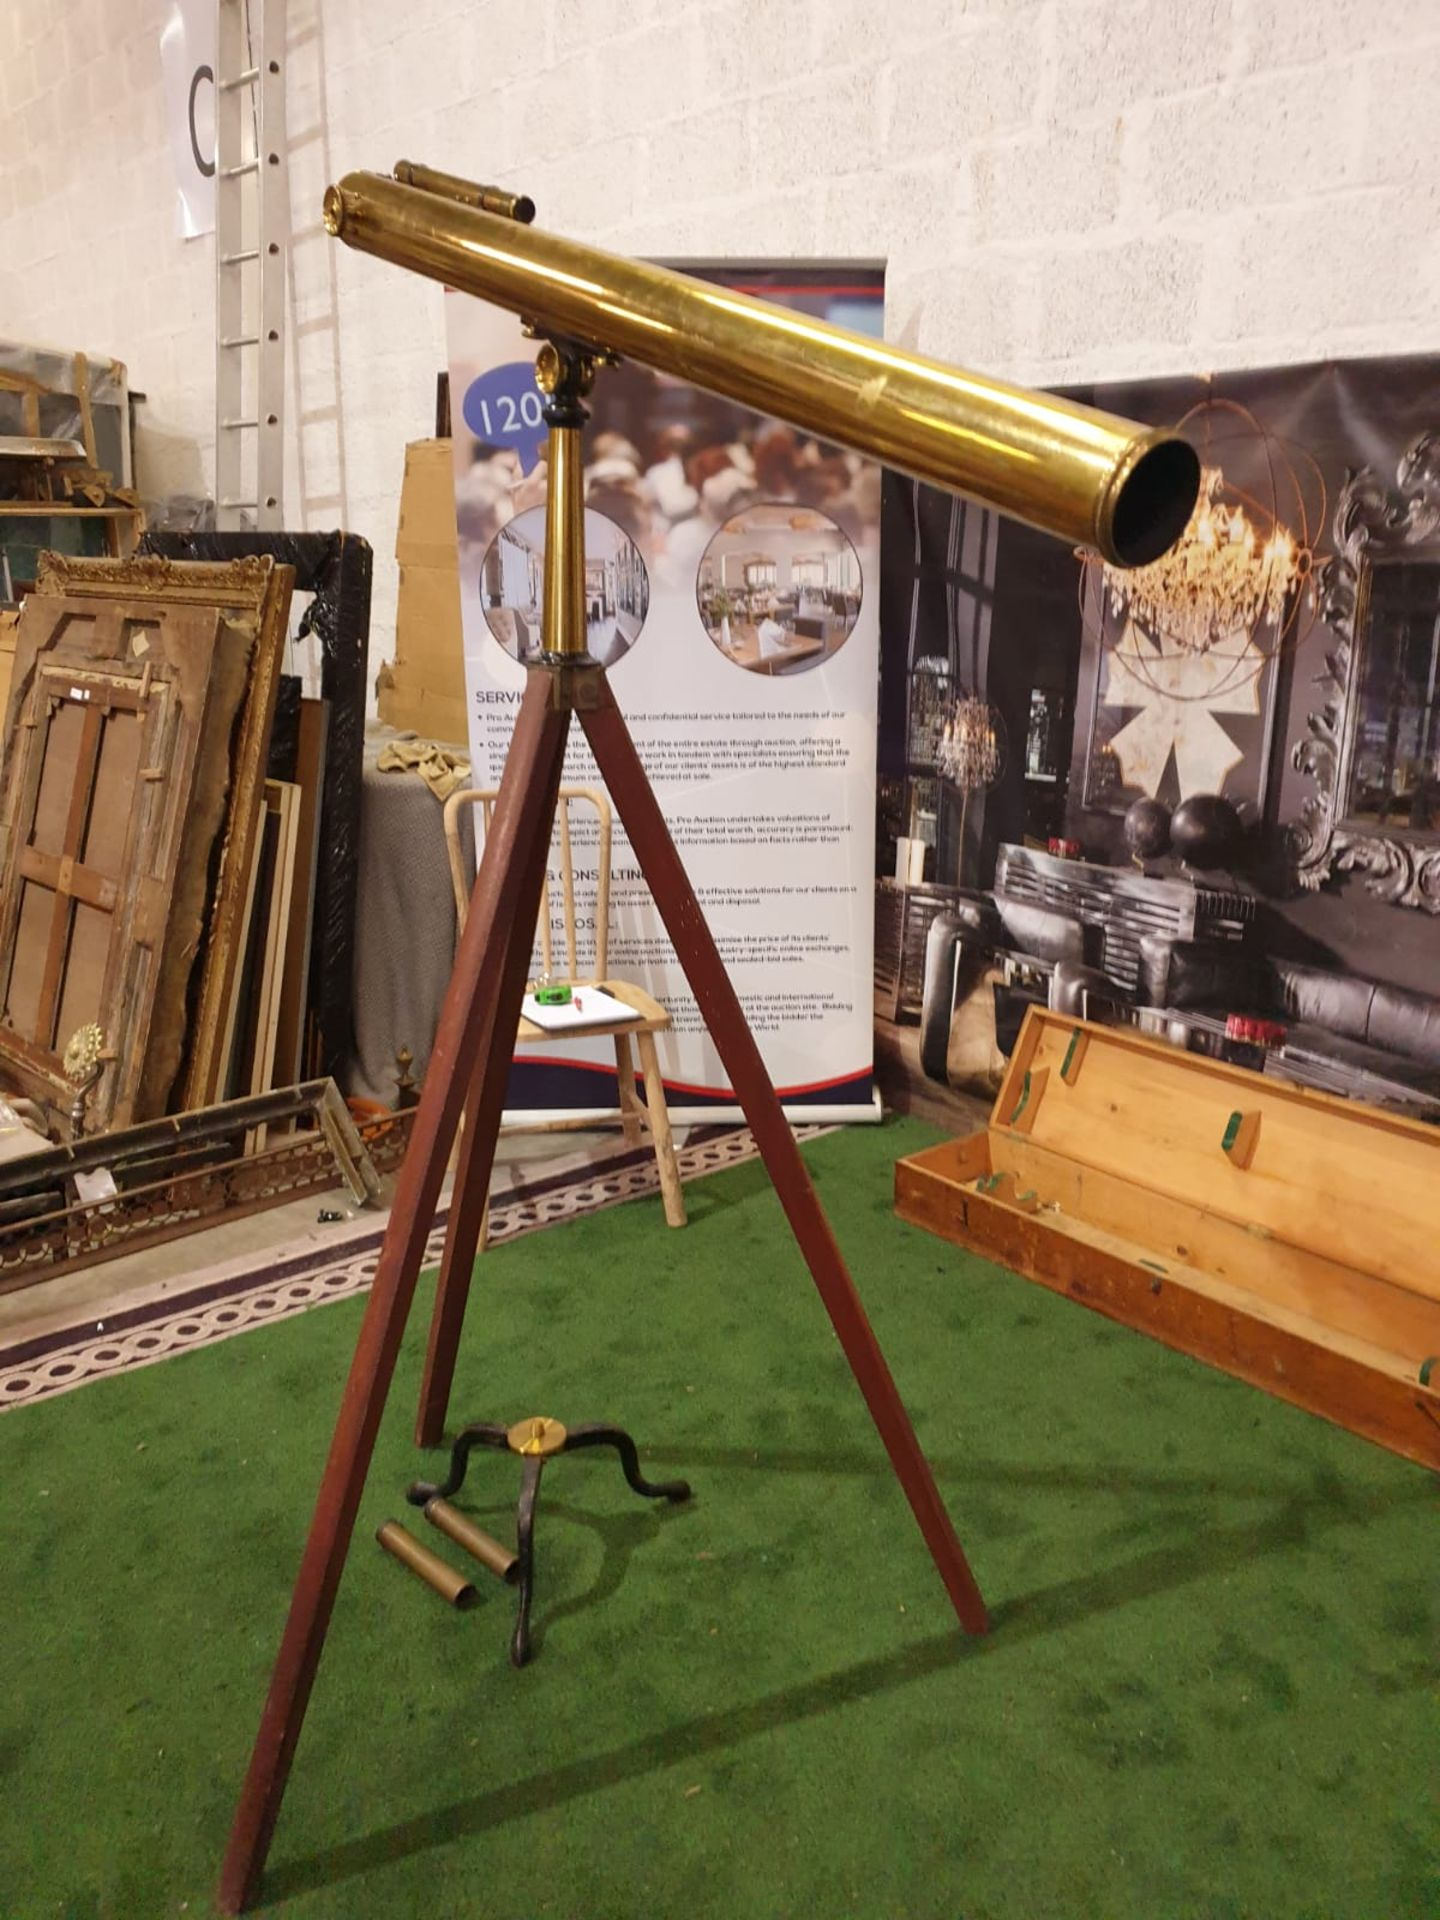 Lacquered brass and lens glass refractive single draw library telescope with star finder attachment, - Image 2 of 6